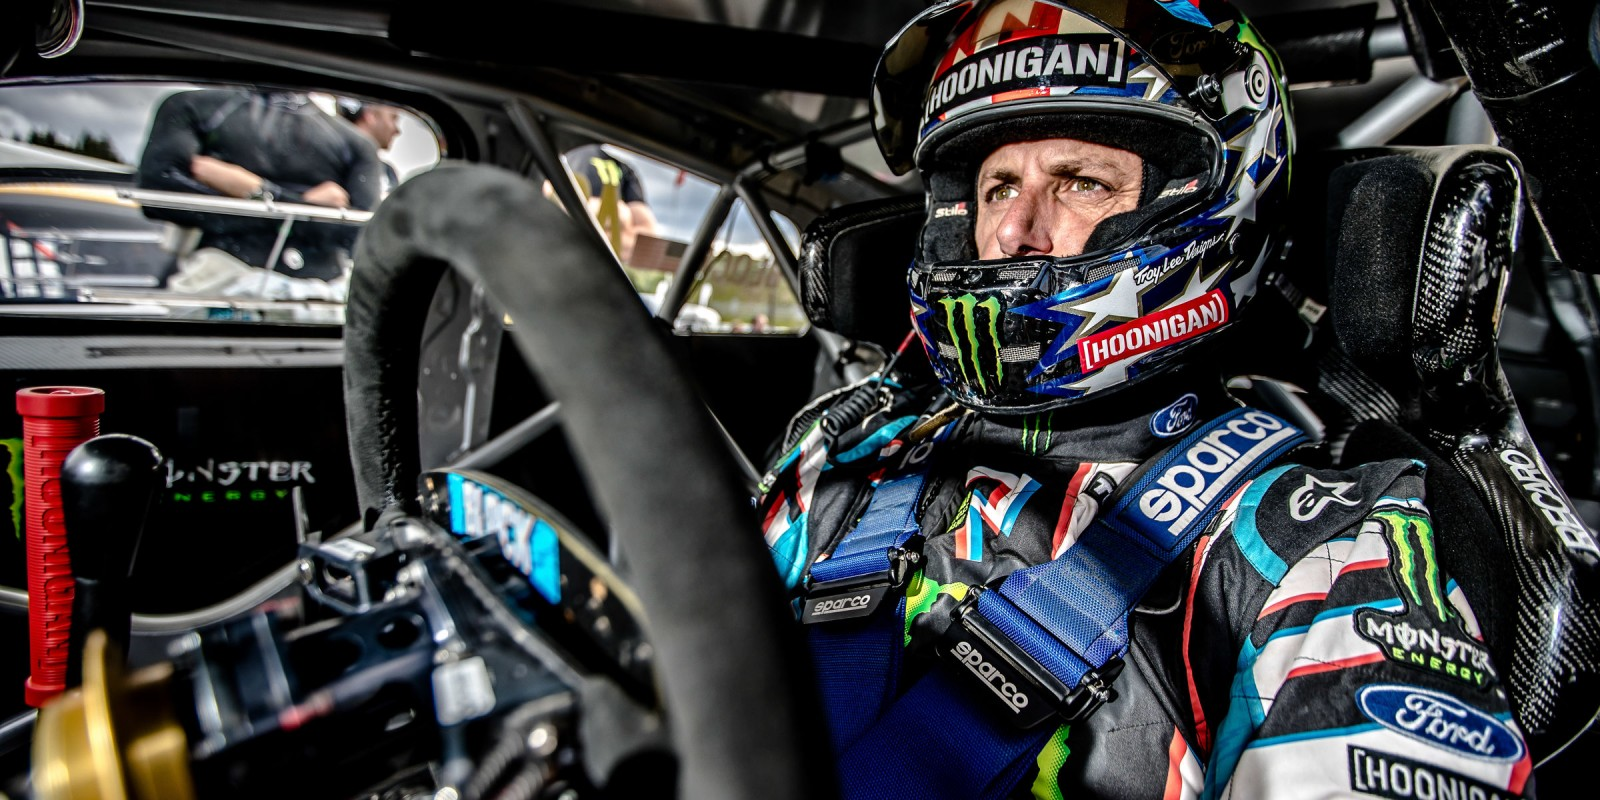 Friday images from the 2017 World RX of Norway